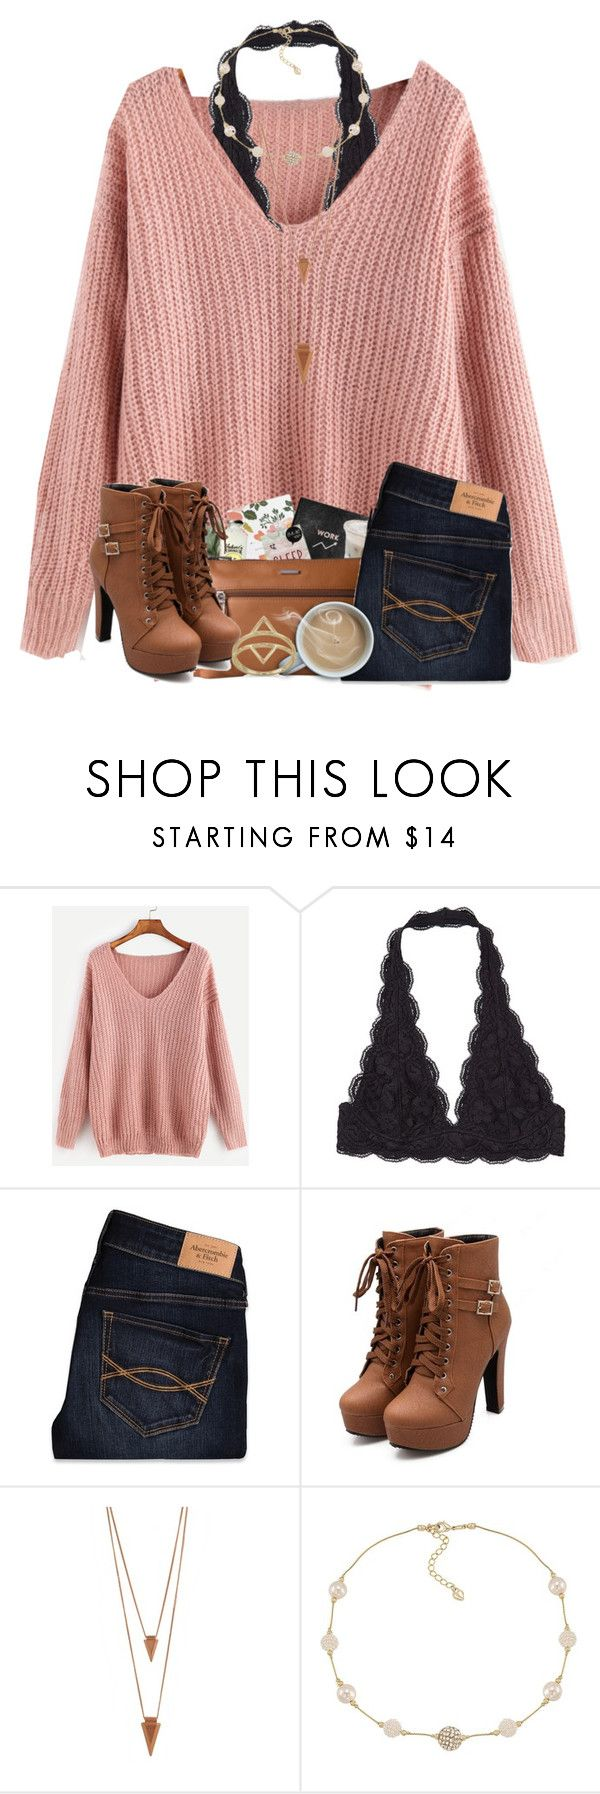 """""""Watching The Voice """" by cassieq6929 ❤ liked on Polyvore featuring Abercrombie & Fitch, Jules Smith, Carolee and BillyTheTree"""